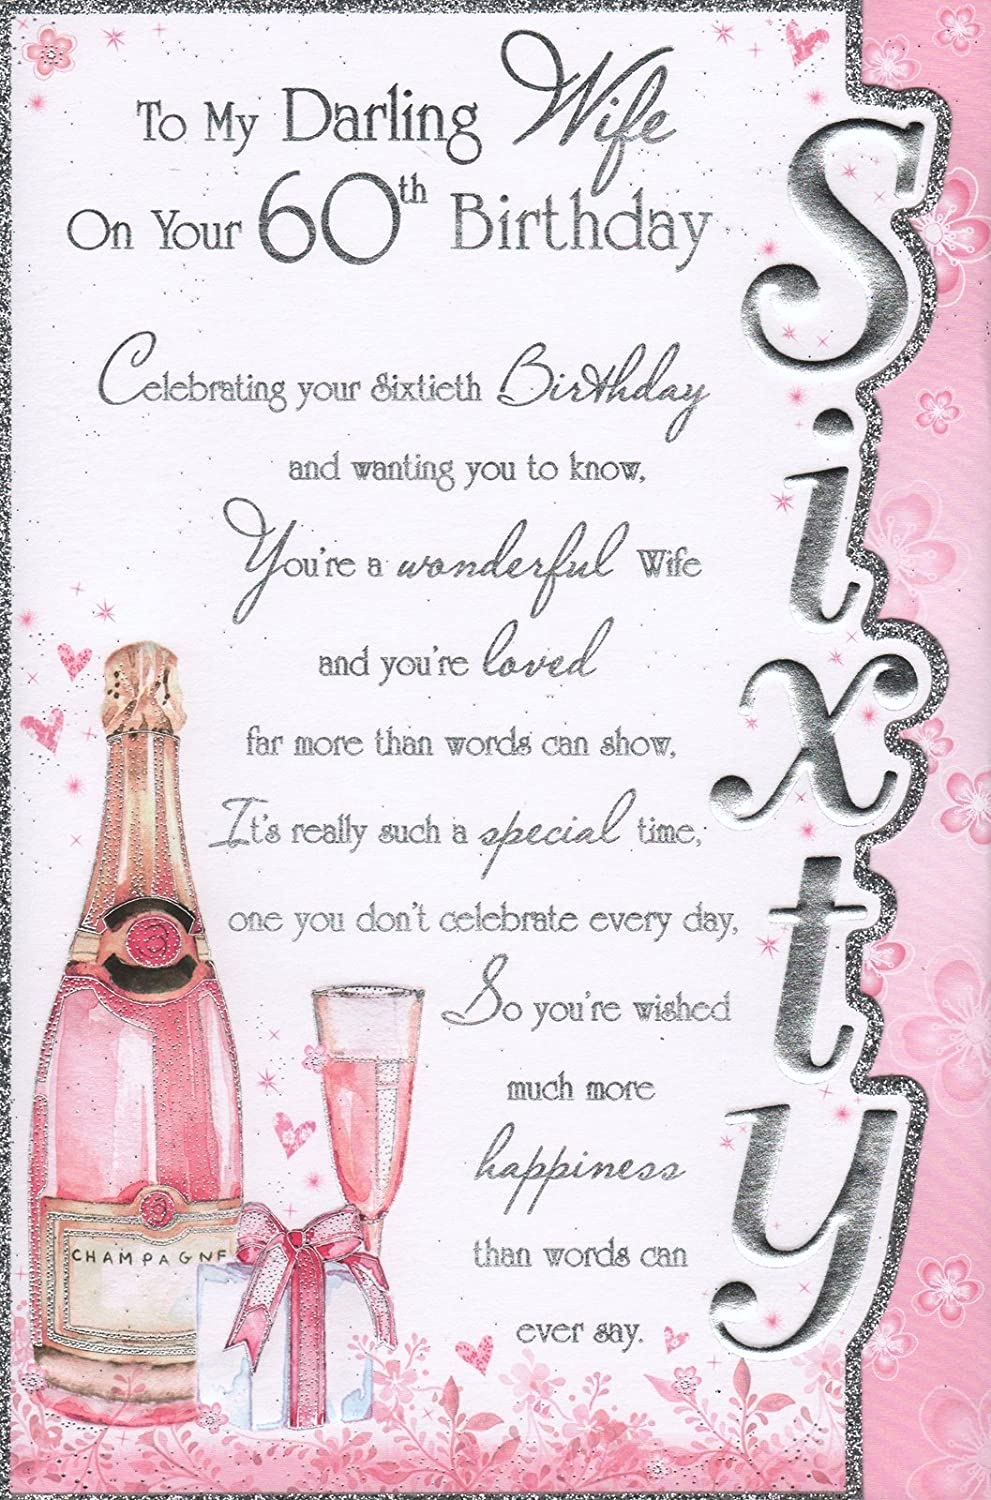 Wife 60th Birthday Card To My Darling Wife On Your 60th – Birthday Cards 60th